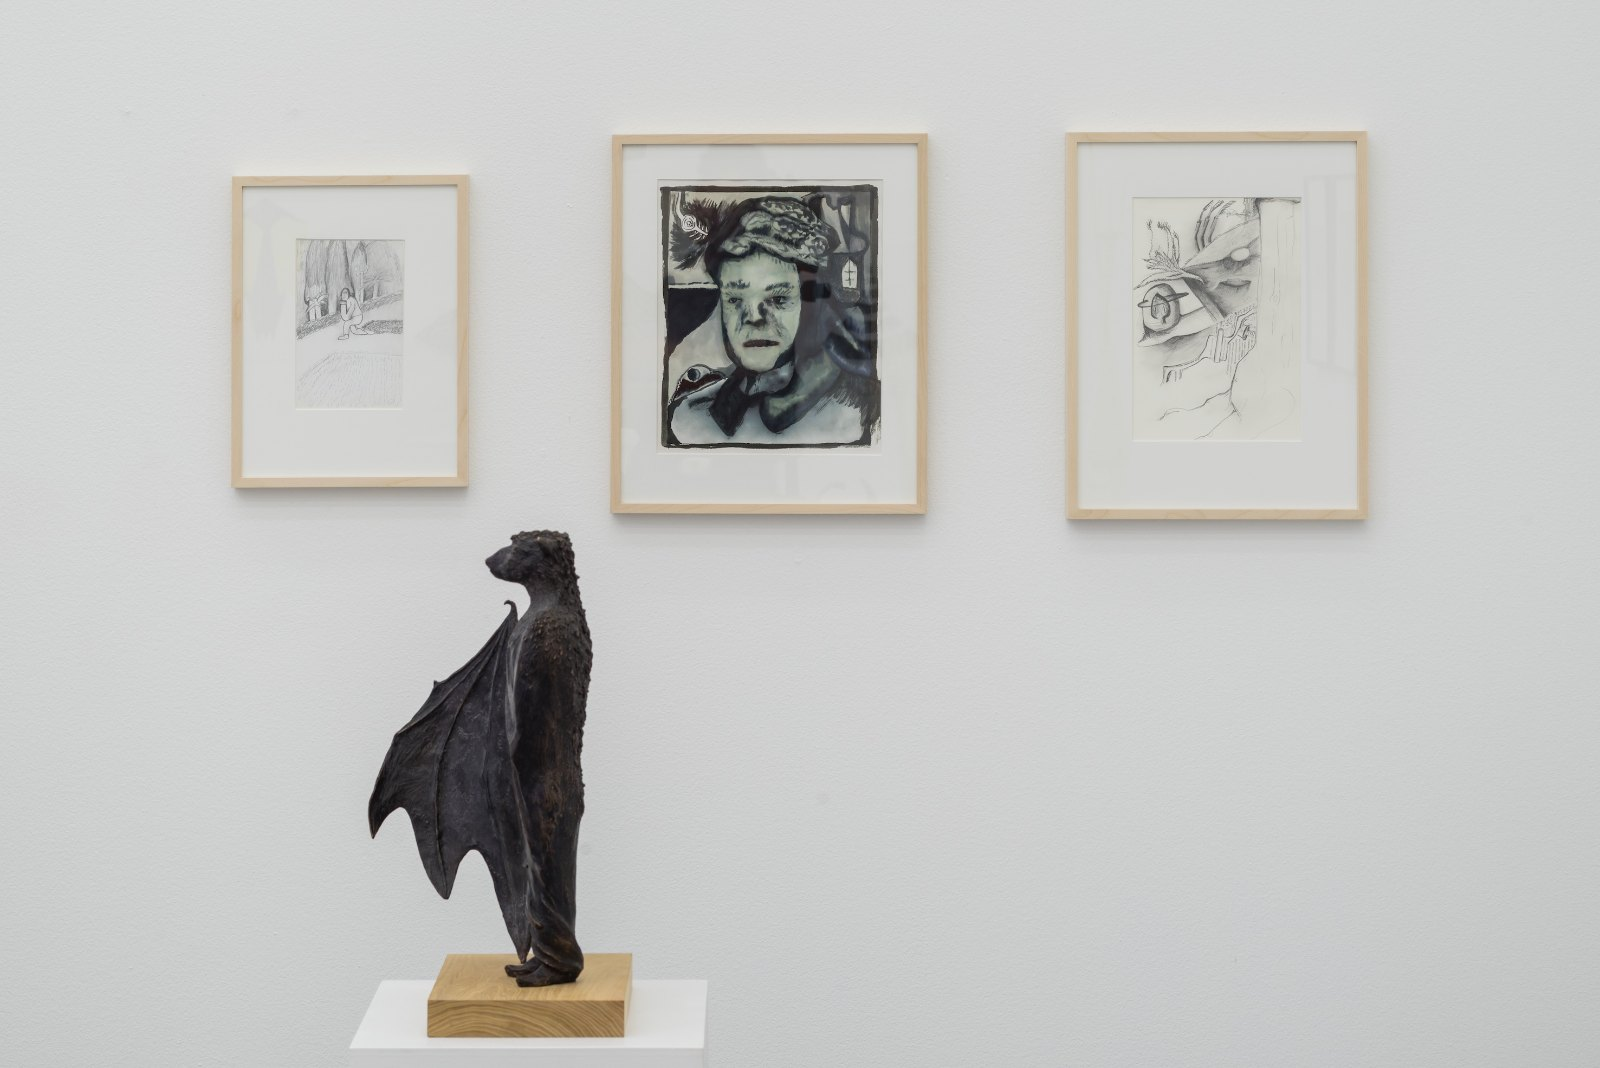 From left: Niclas Löfgren, Lorca parc, Granada, 2007, Pencil on paper, 20 x 13 cm. Guts and gore of the soul, 2008, ink on paper, 32,5 x 26,5 cm. We still don't know what that was (Phoenix nest), 2014, Pencil on paper, 28,5 x 20 cm